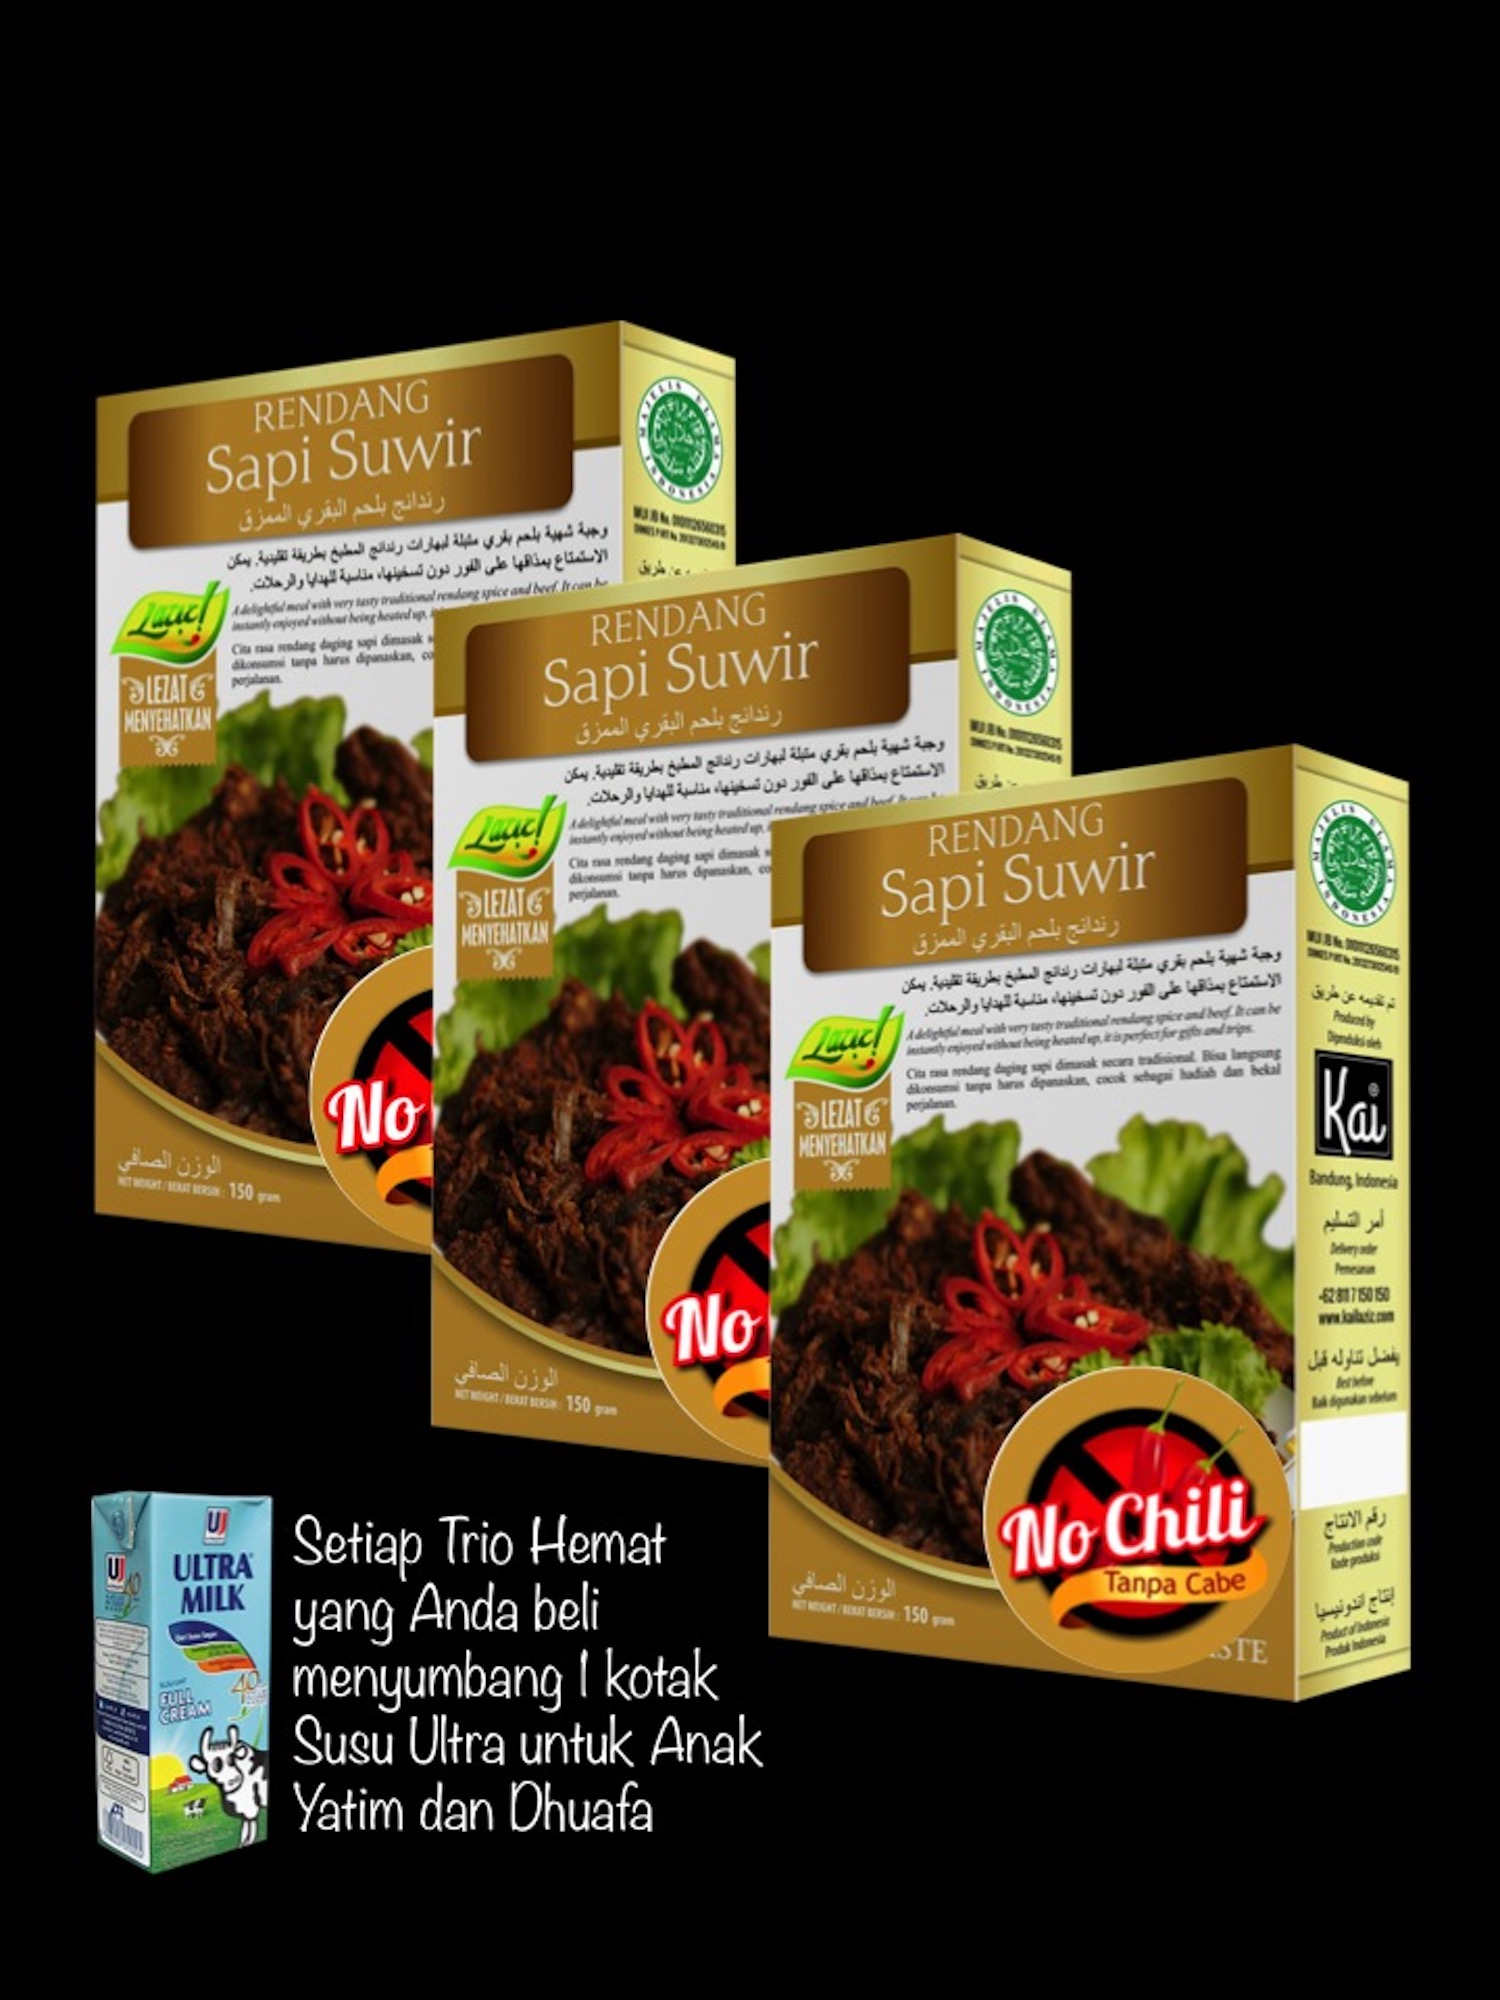 KID MEALS 3 RENDANG SAPI SUWIR NO CHILI KAI FOOD 450GR